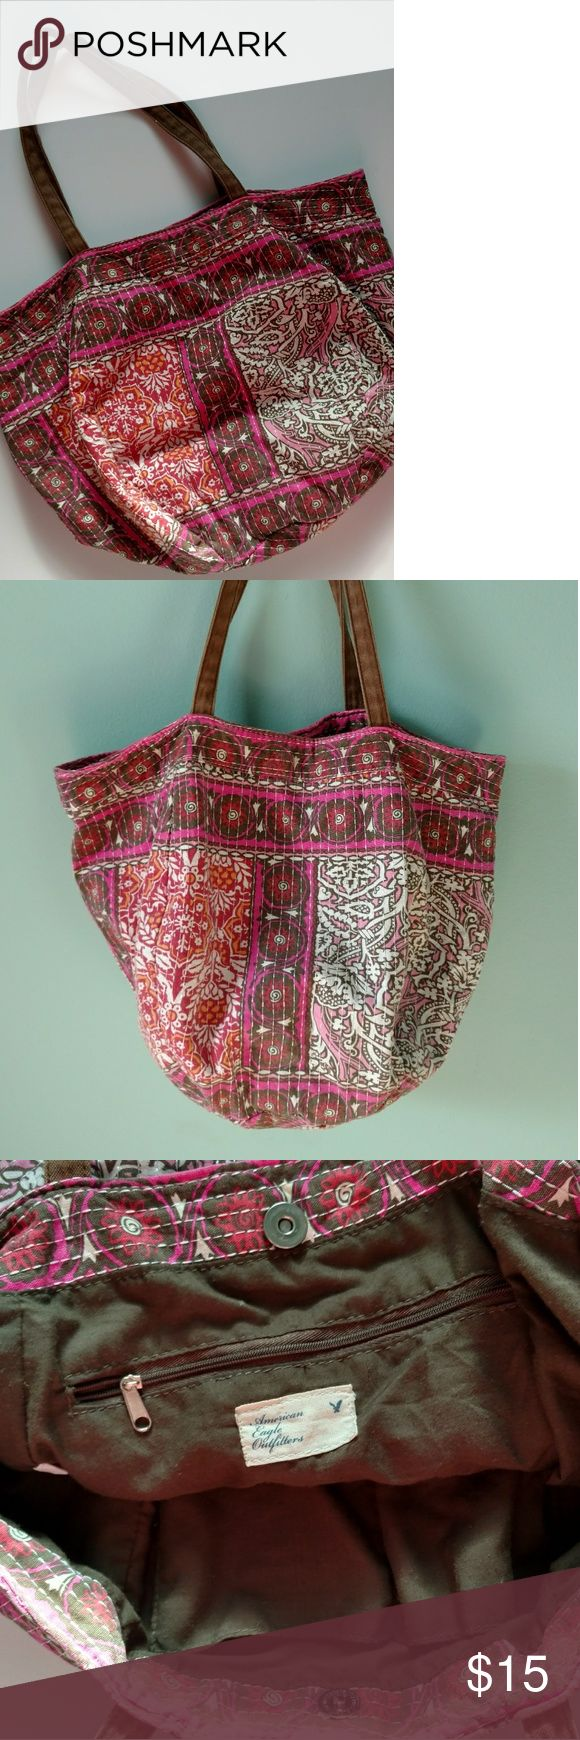 American Eagle Boho Bucket Tote Bag Soft and sturdy cotton material in beautiful summery colors and prints. White detail stitching. Circular bucket shape, double shoulder strap, magnetic snap closure. Inter zipper pocket and two open side pockets for phone and keys. Excellent used condition. American Eagle Outfitters Bags Totes